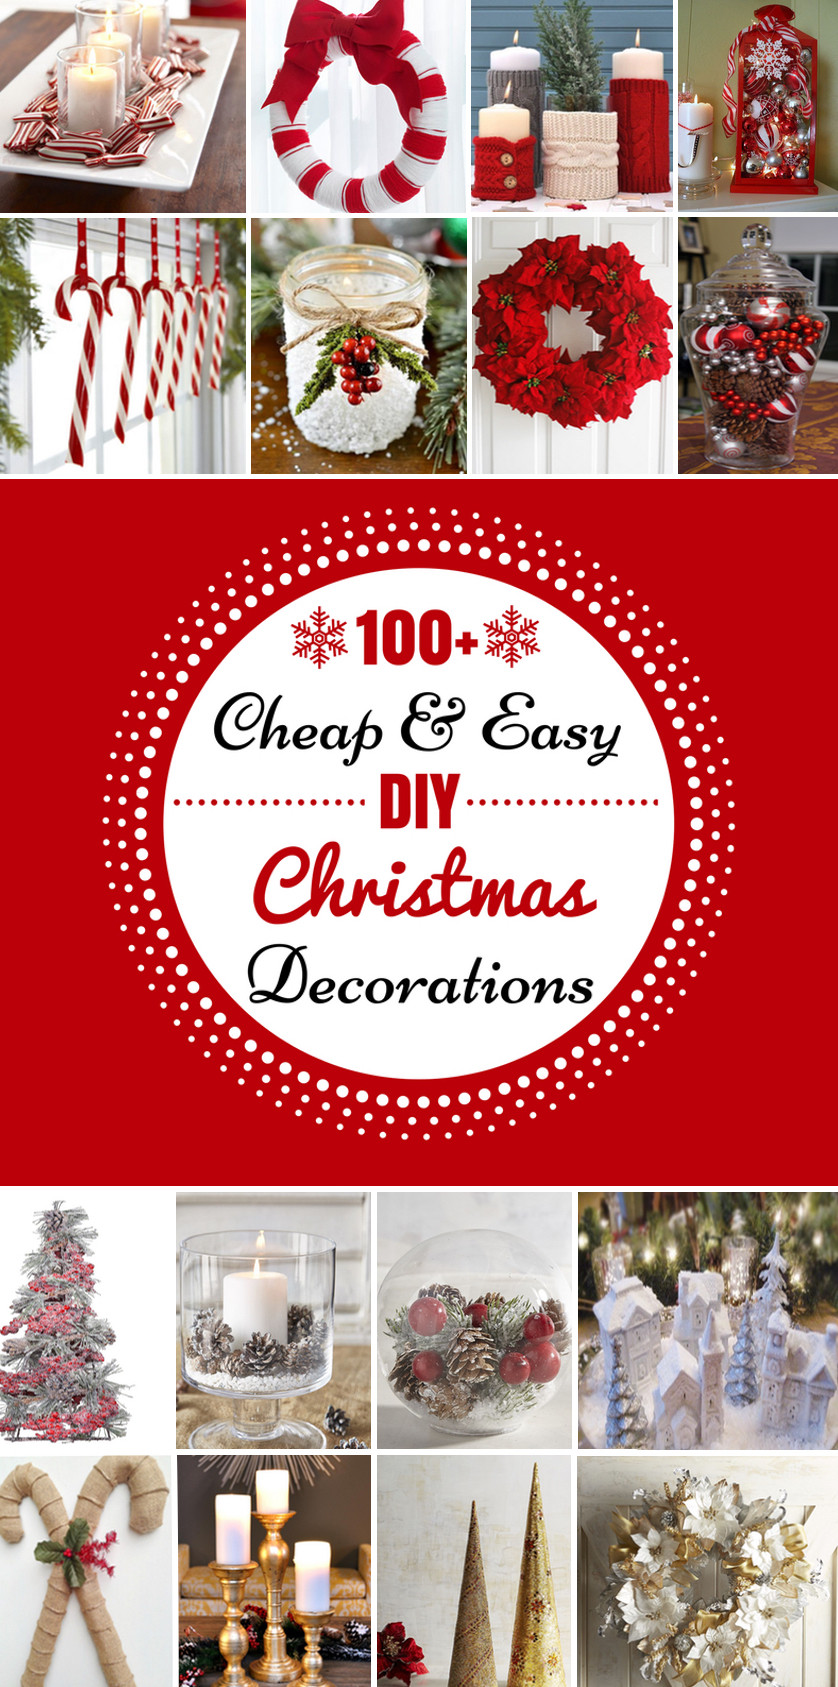 Best ideas about DIY Christmas Decor . Save or Pin 100 Cheap & Easy DIY Christmas Decorations Prudent Penny Now.